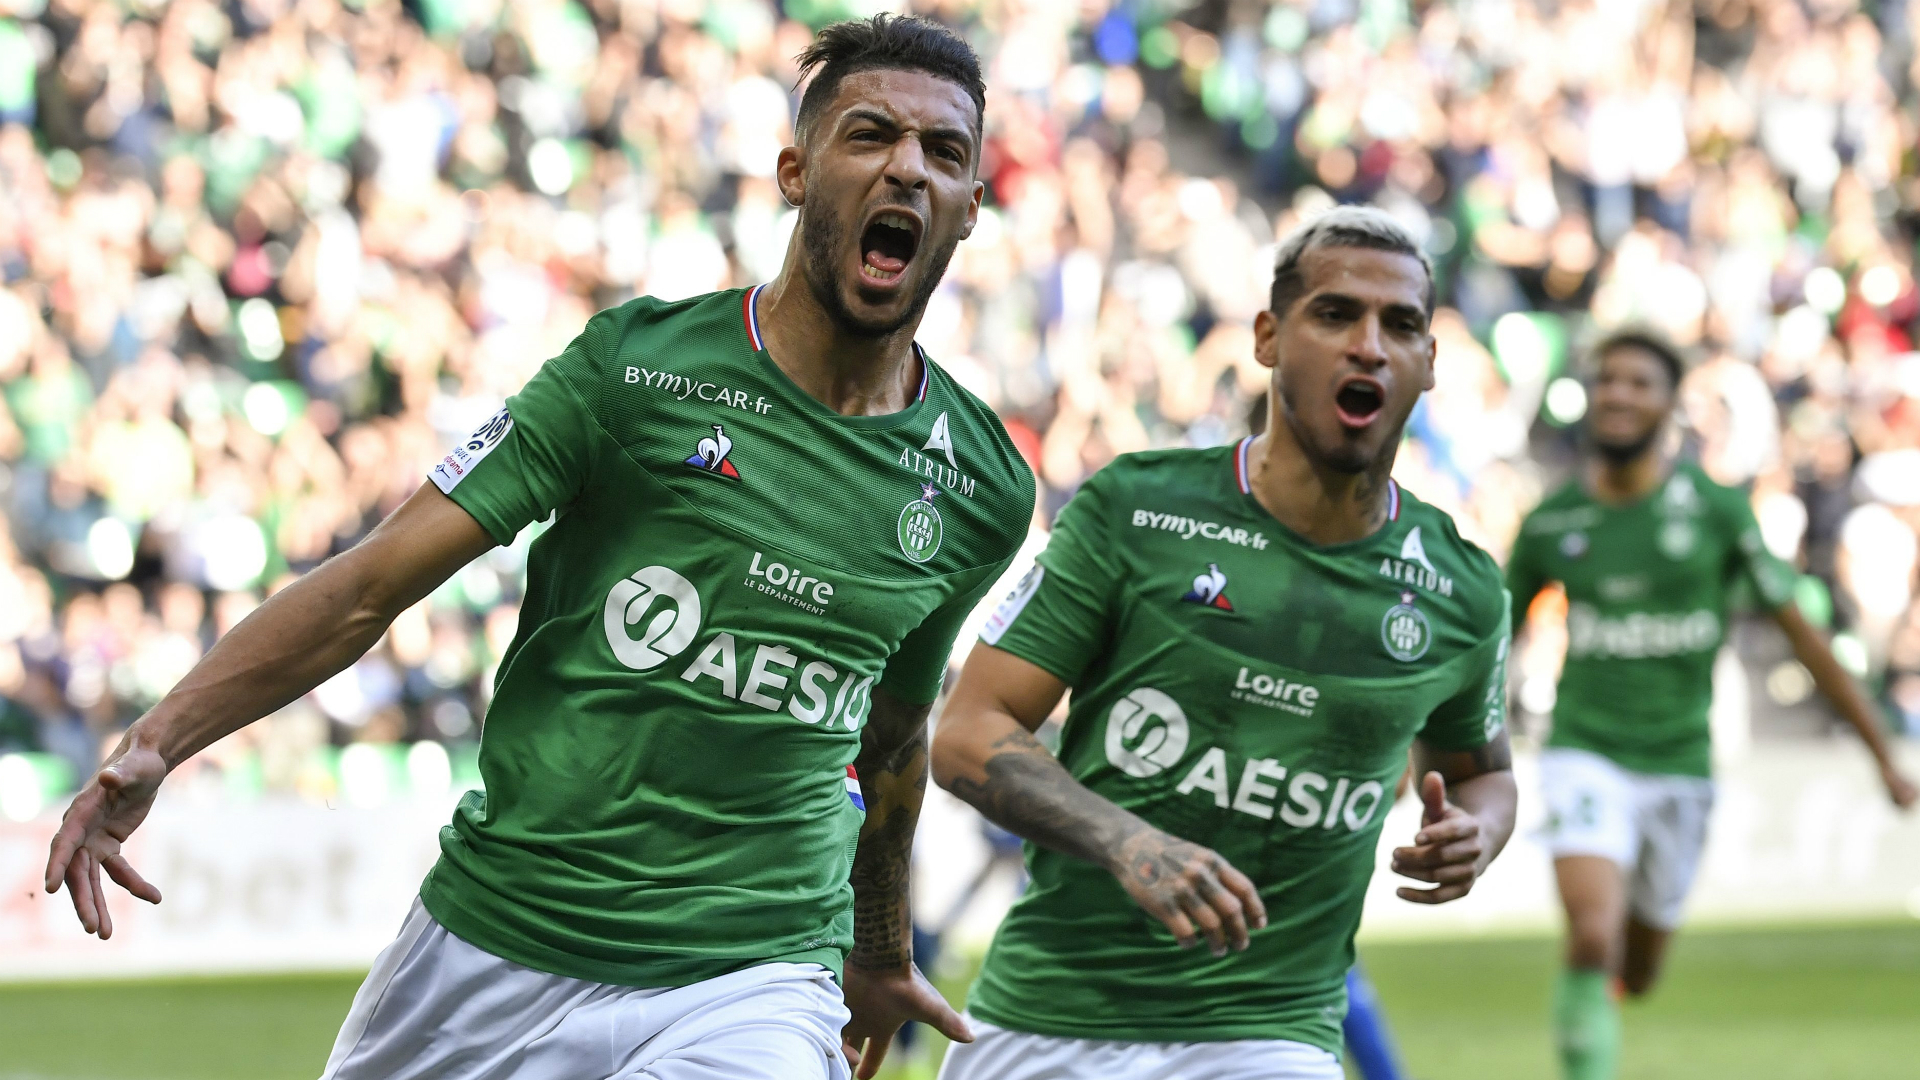 Saint-Etienne won't give up in Ligue 1 relegation fight - Bouanga